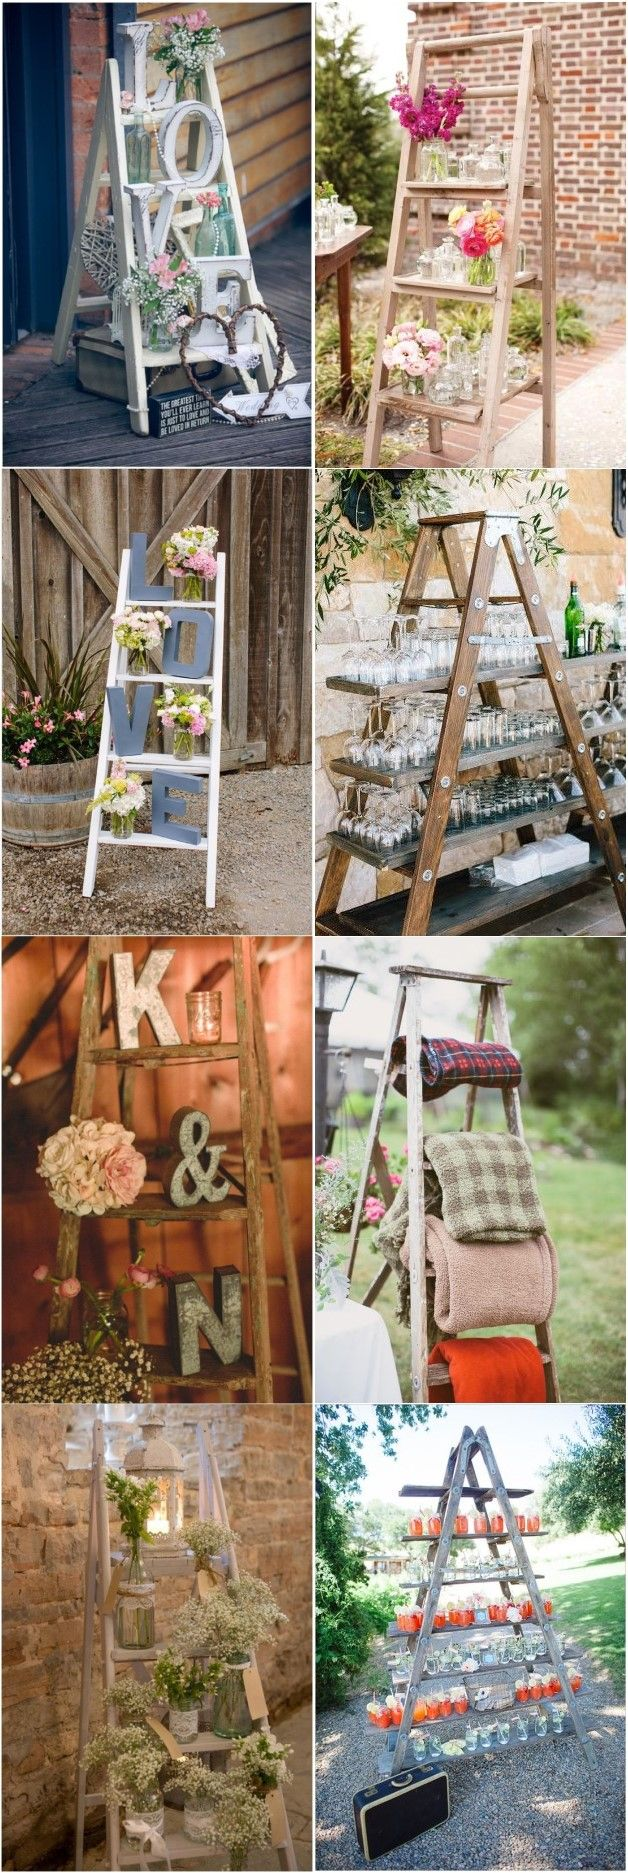 Wedding decorations country   Rustic Country Wedding Decoration Ideas with Ladders  Yellow